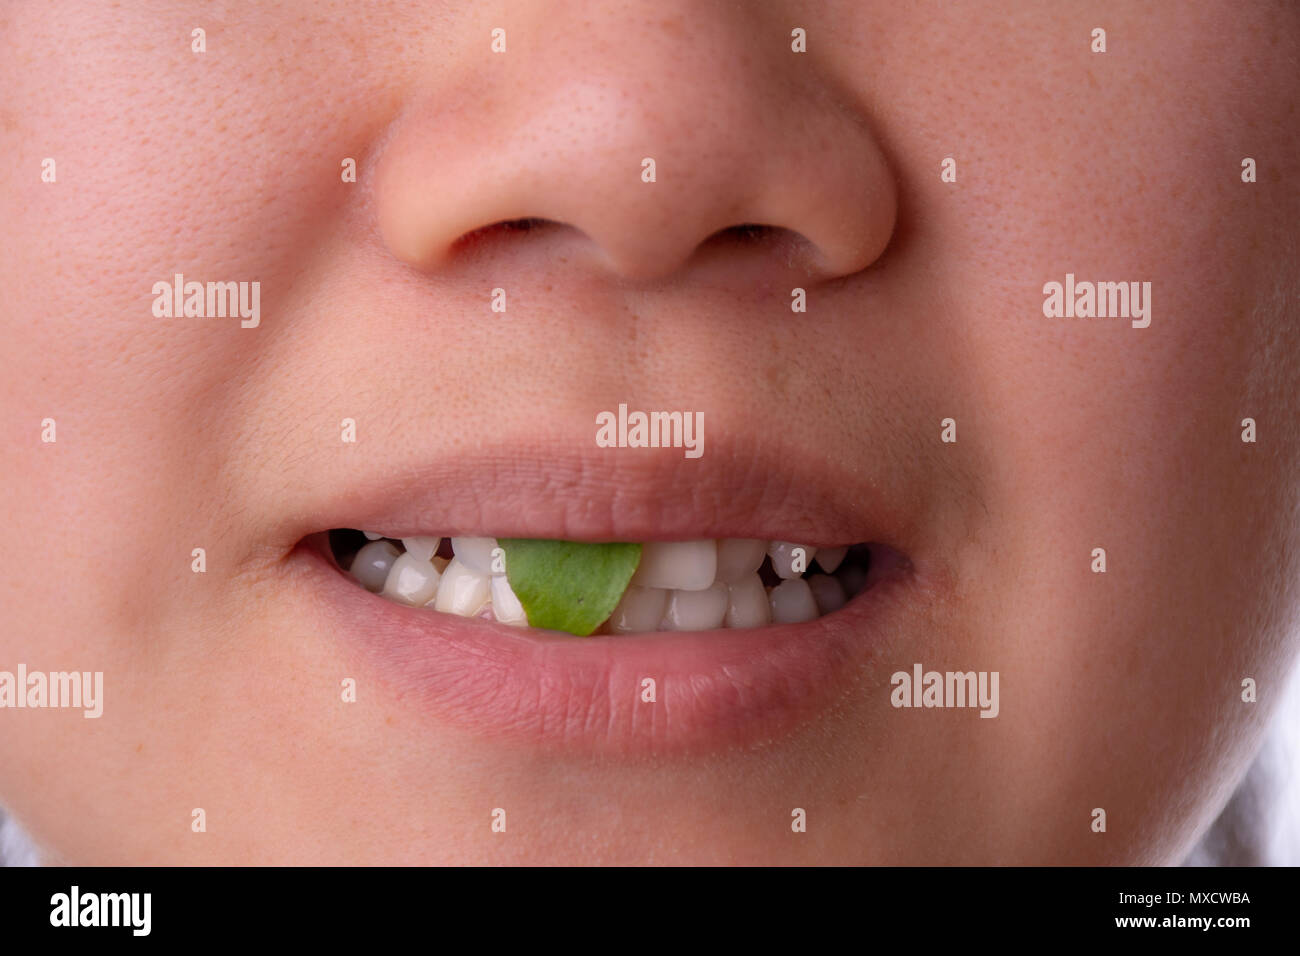 Close-up of woman smiling with spinach or salad stuck in her teeth - Stock Image